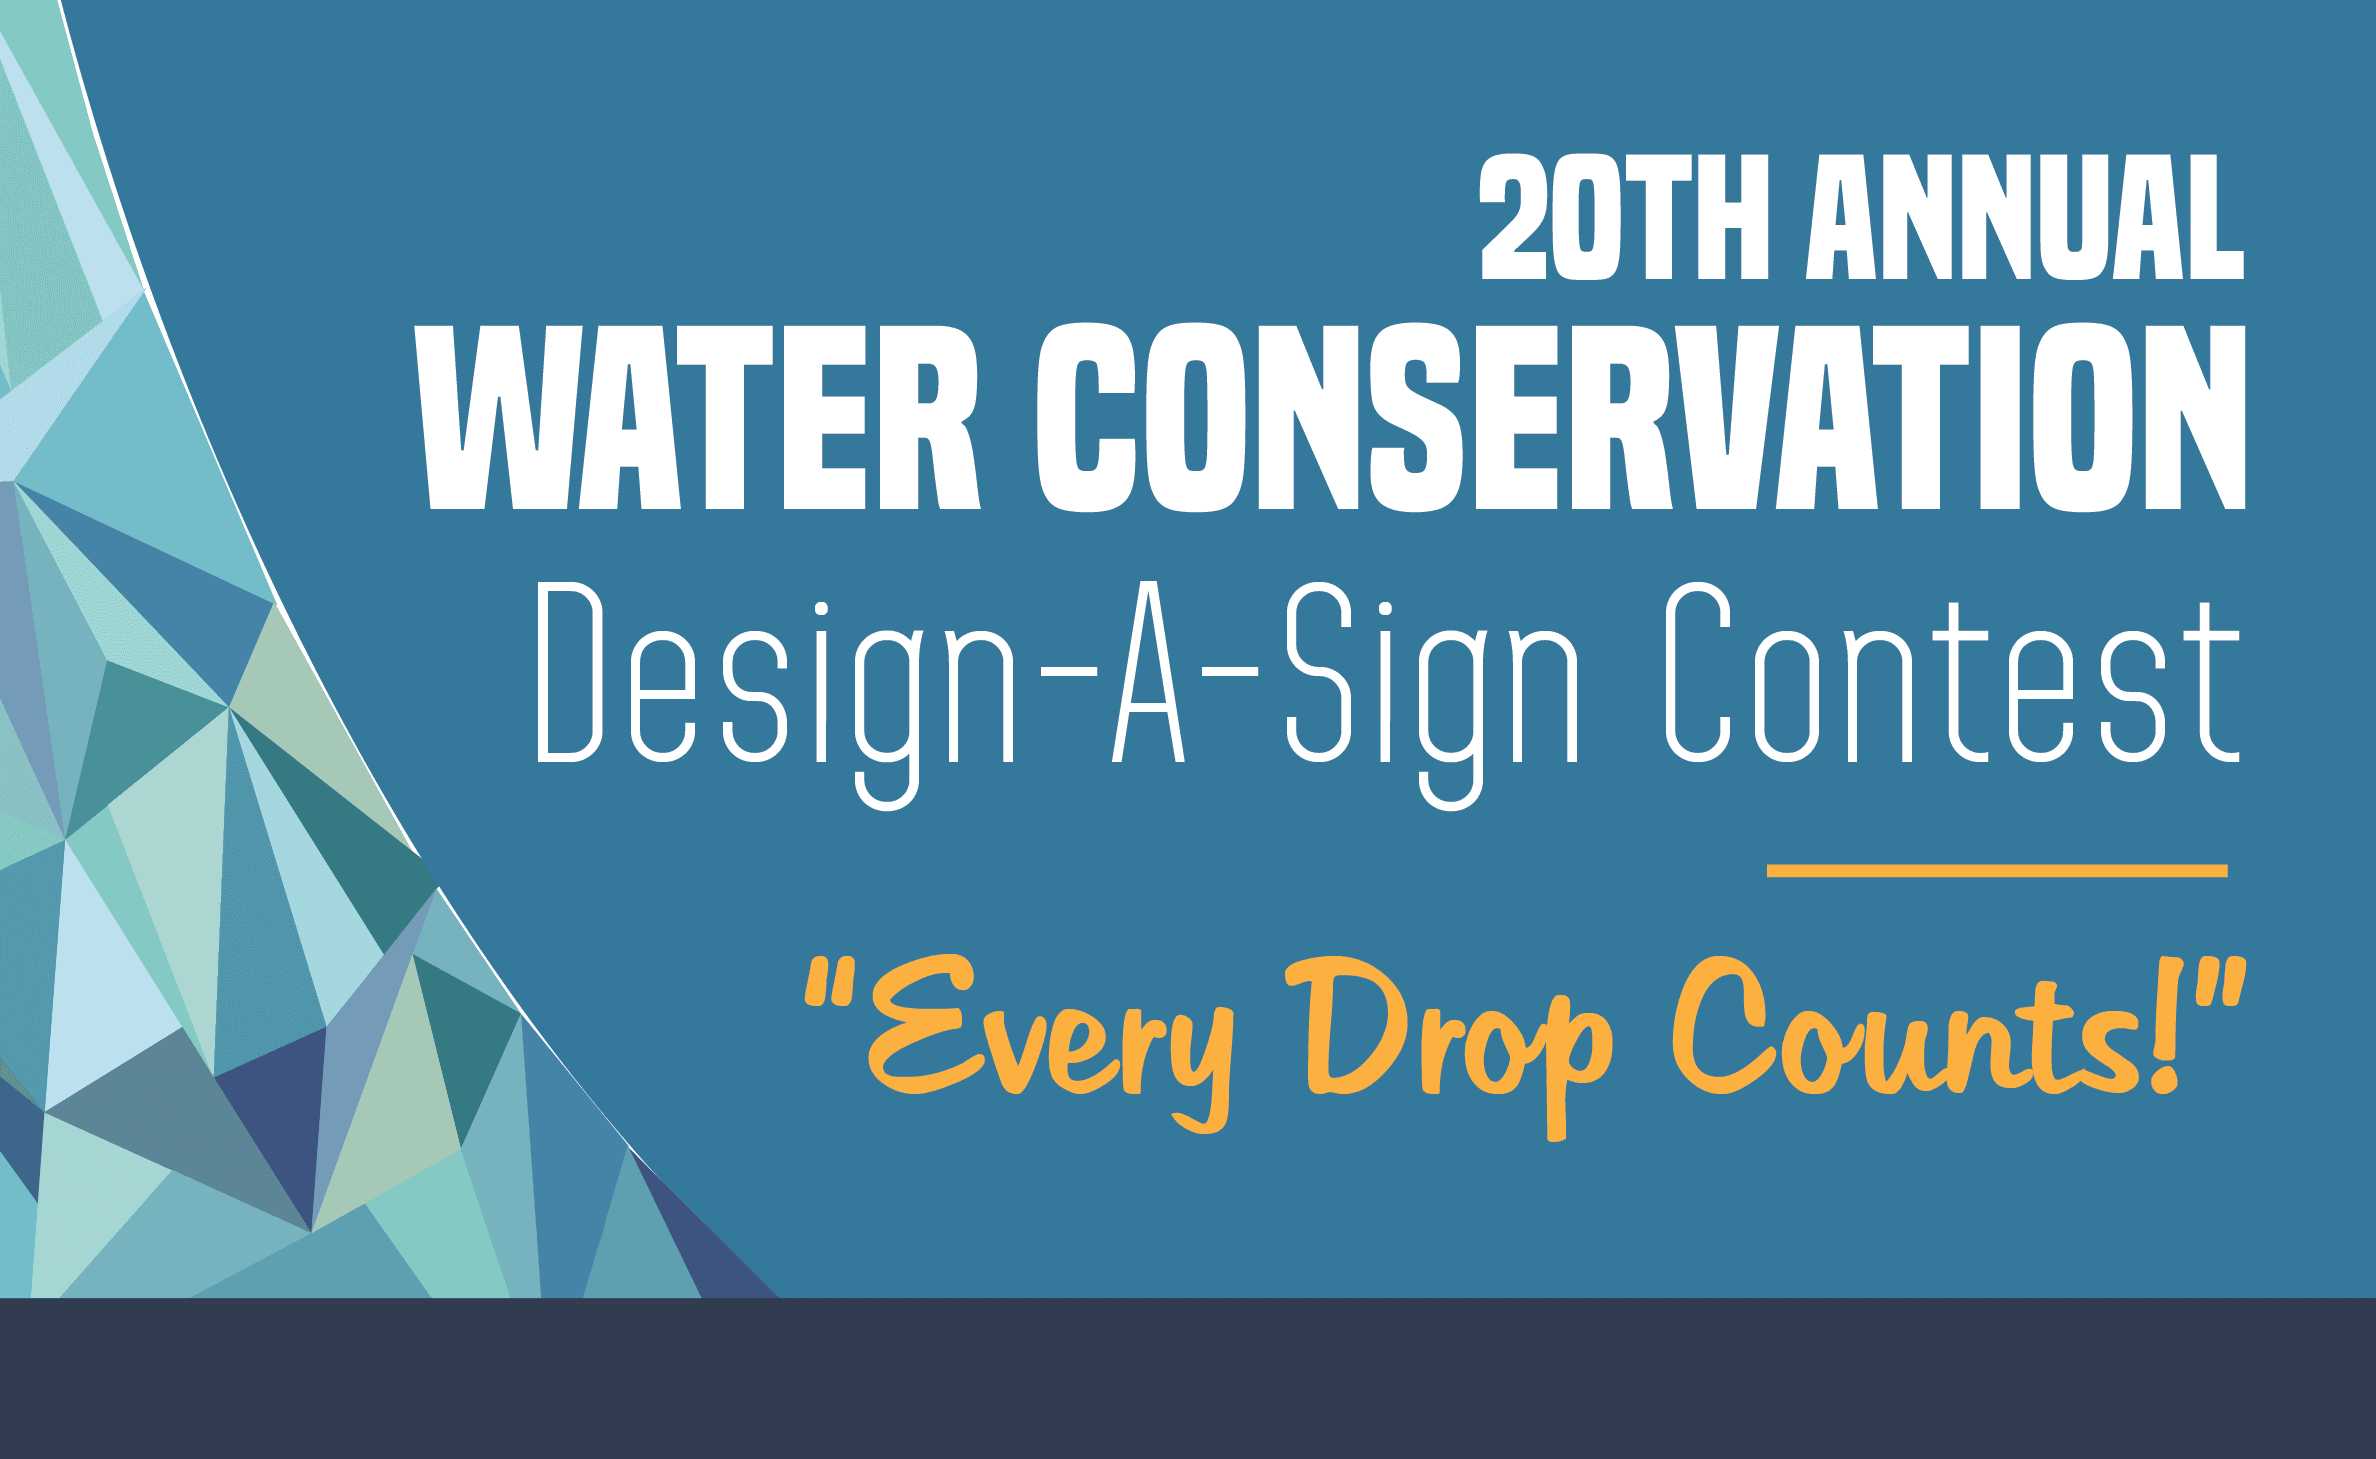 WATER CONSERVATION 2021 - Newsflash-02